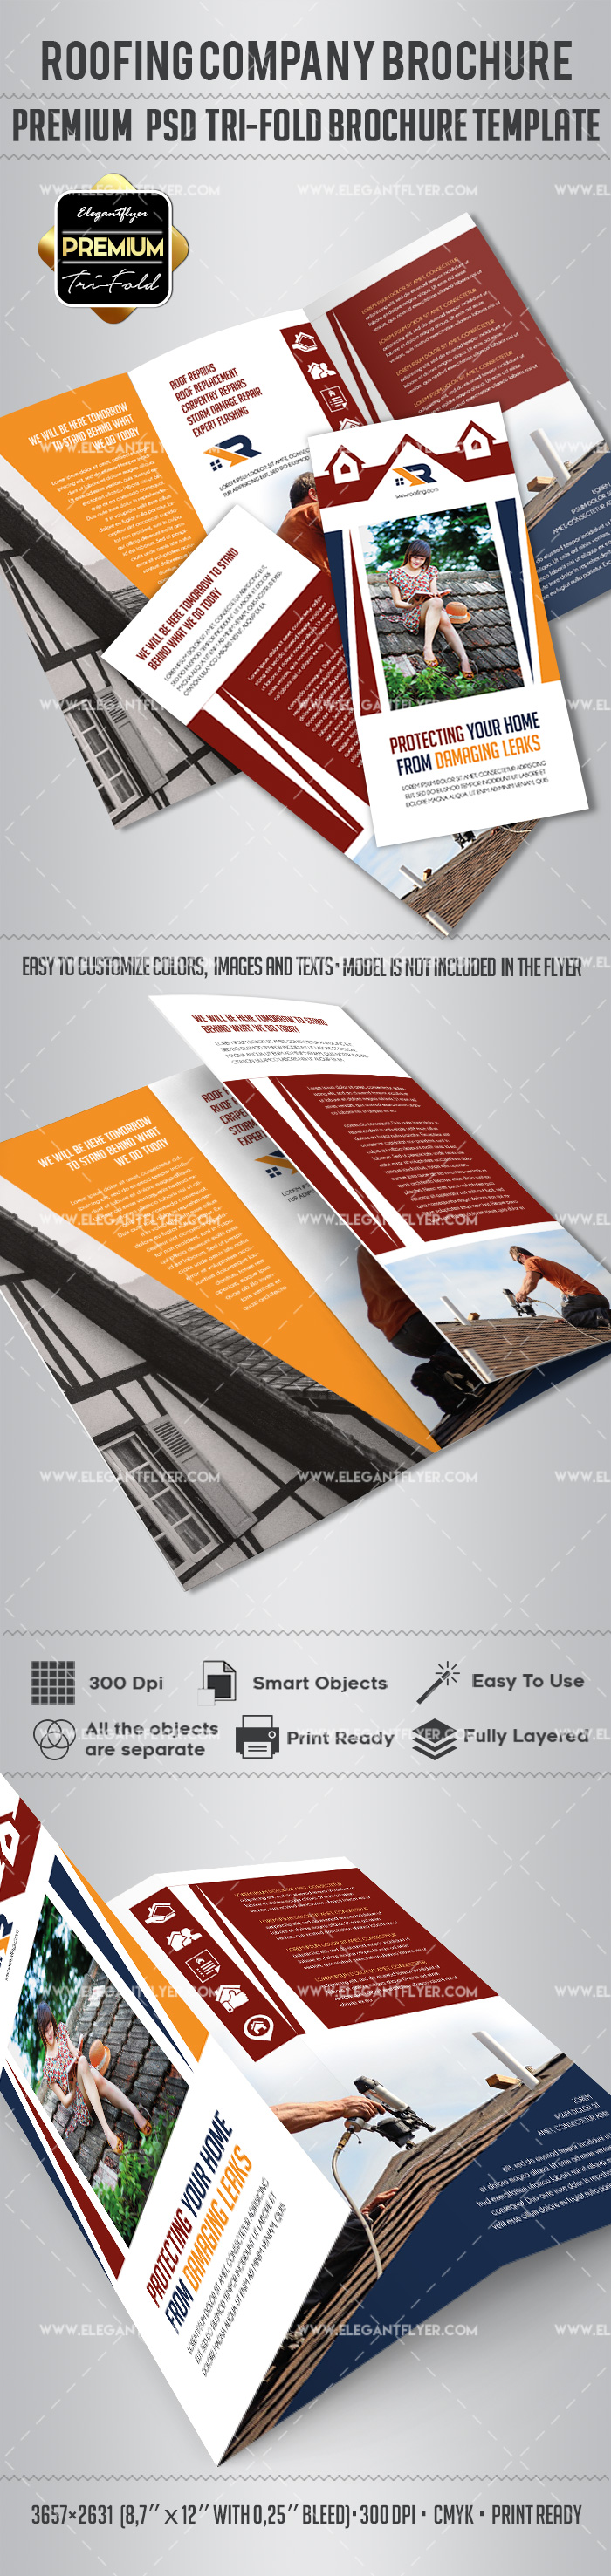 Roofing Company – Premium Tri-Fold PSD Brochure Template